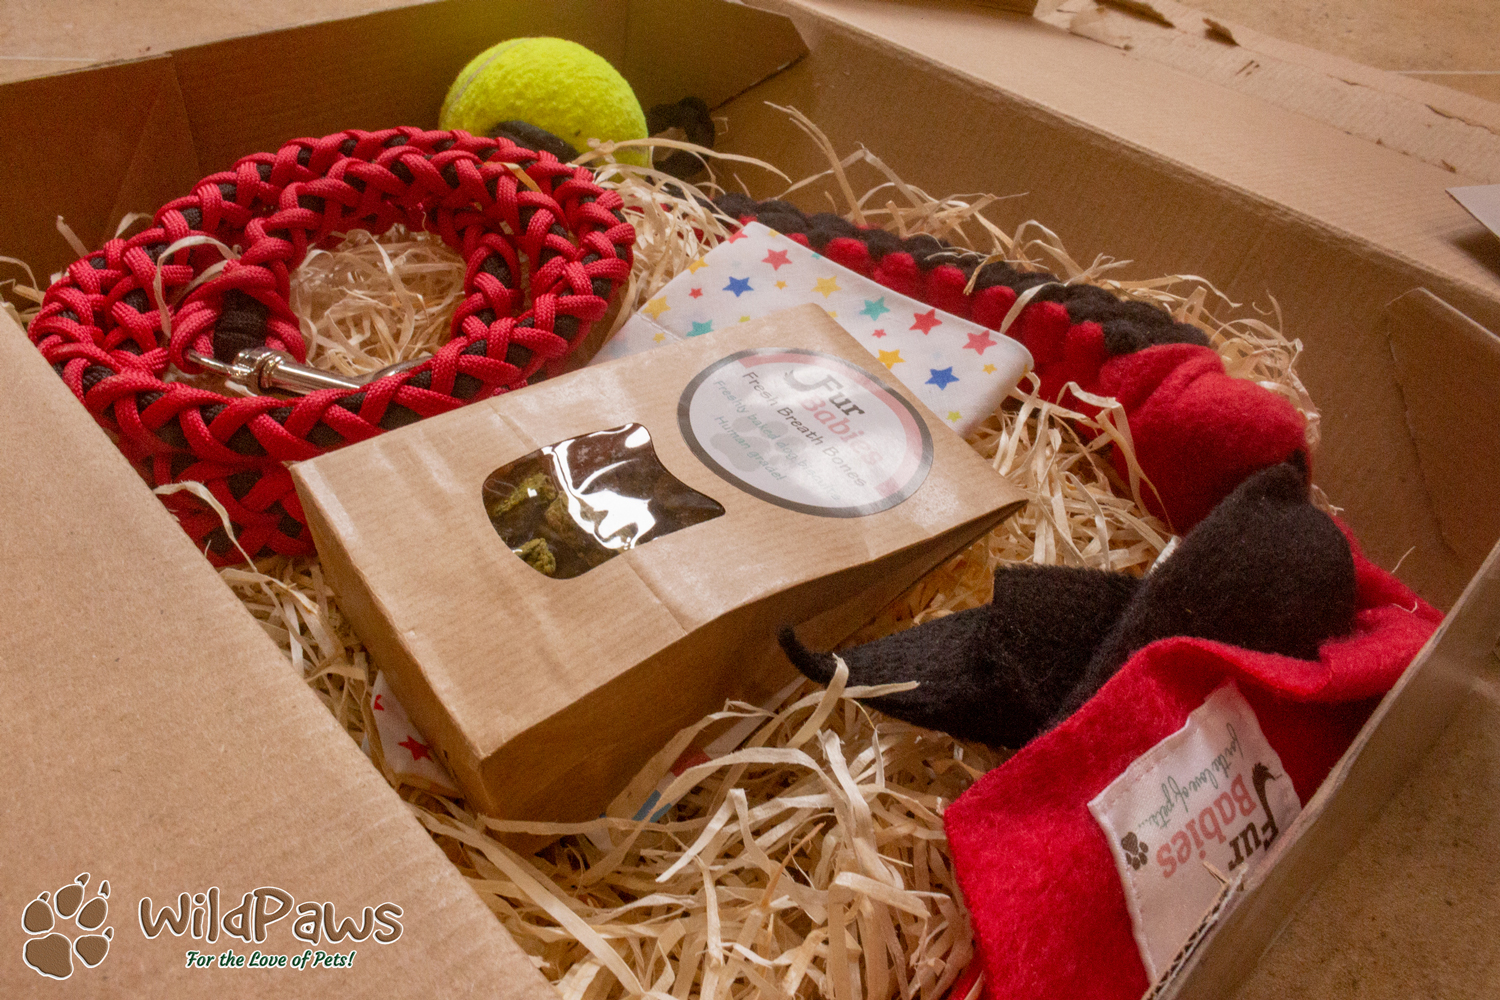 Selection Box of Goodies for Wilbur & Paisley of WildPaws for Fur Babies Blog Review